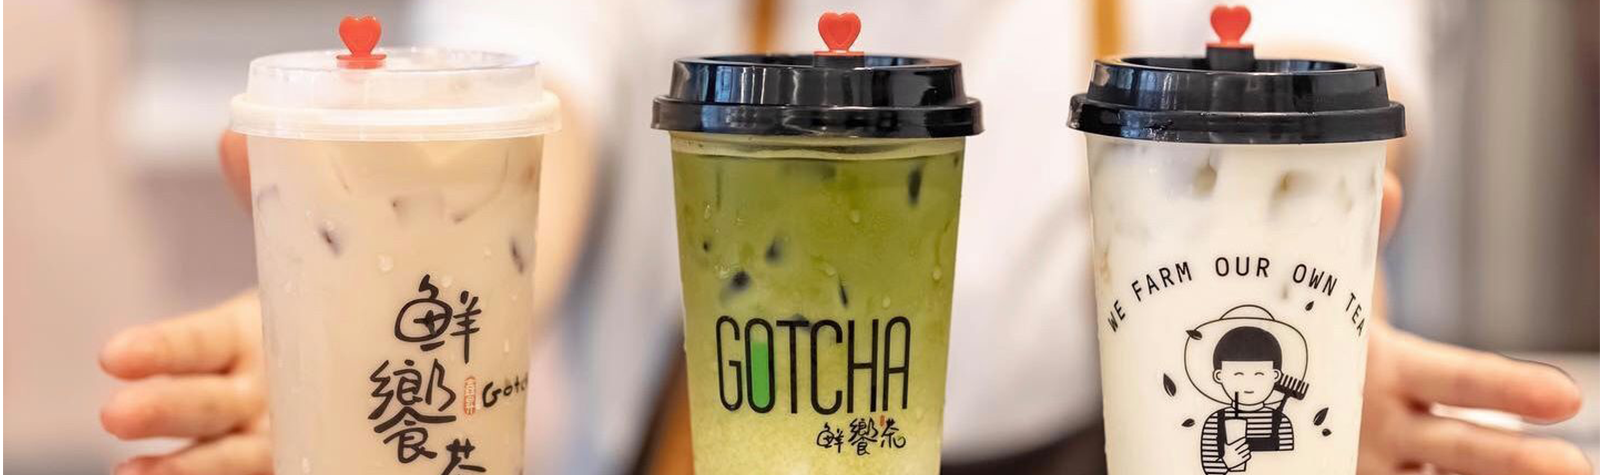 Half Price Boba Tea from Gotcha | Melbourne